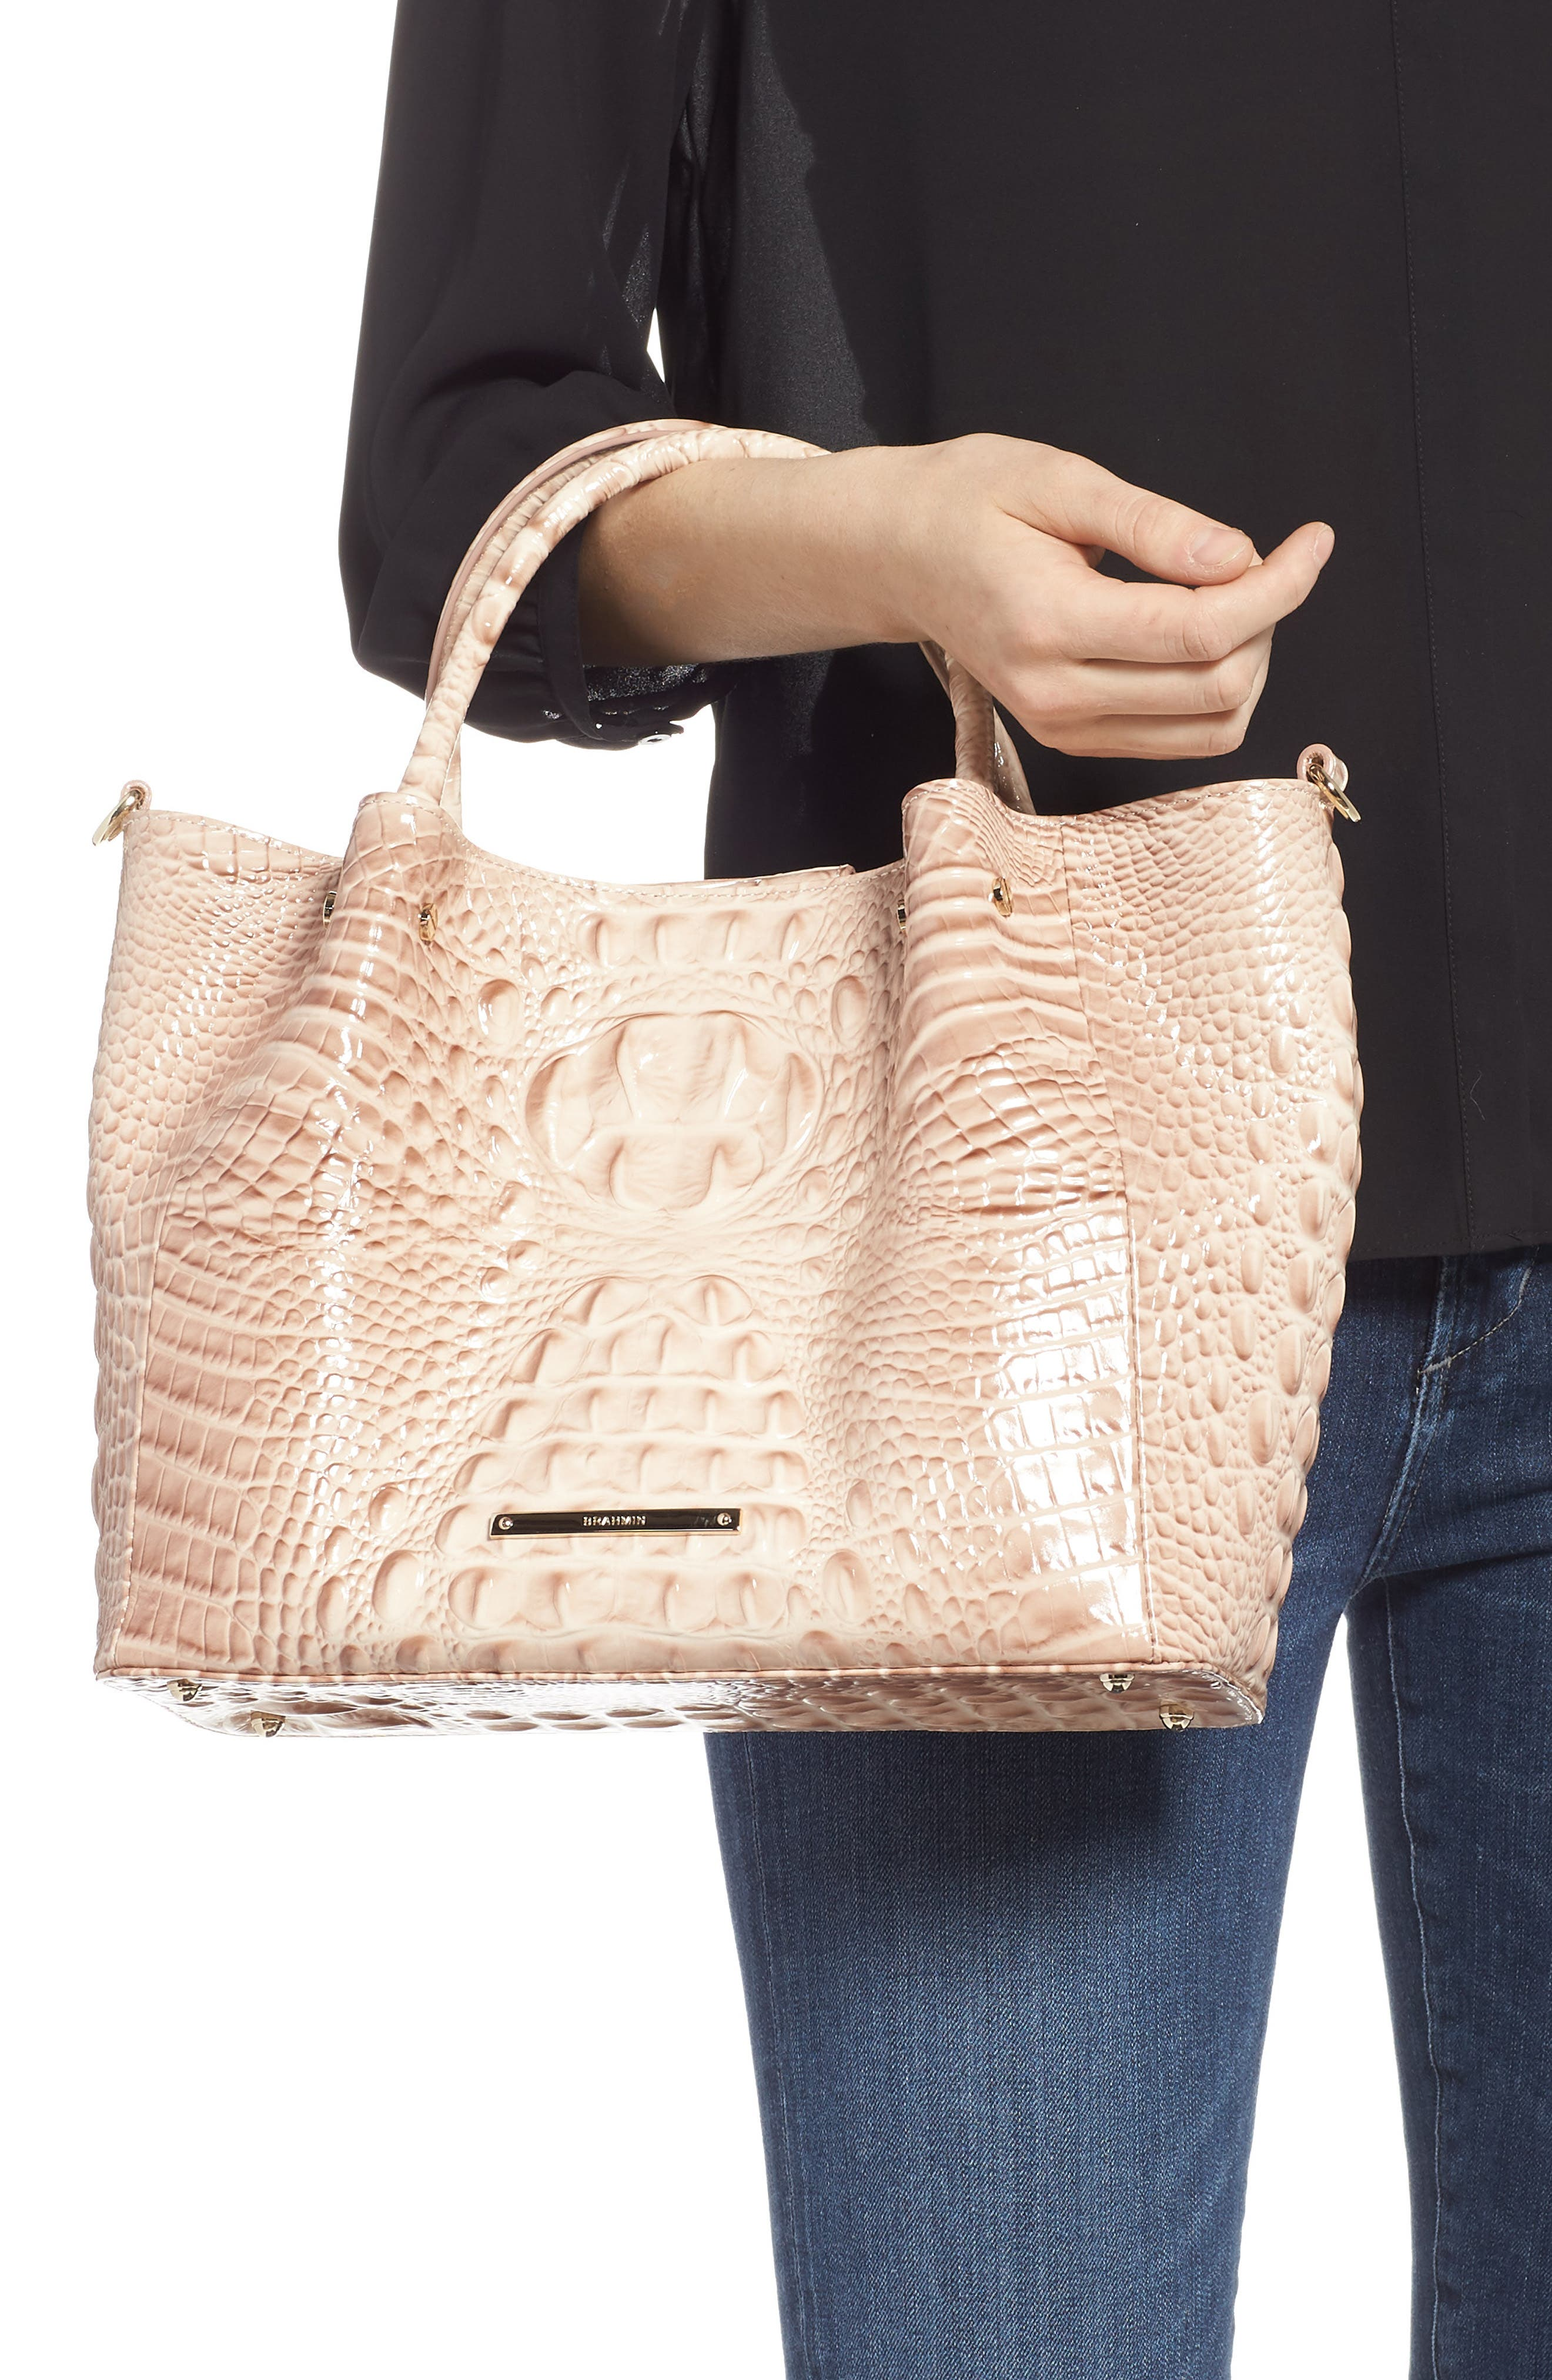 BRAHMIN, Small Mallory Croc Embossed Leather Satchel, Alternate thumbnail 2, color, 650